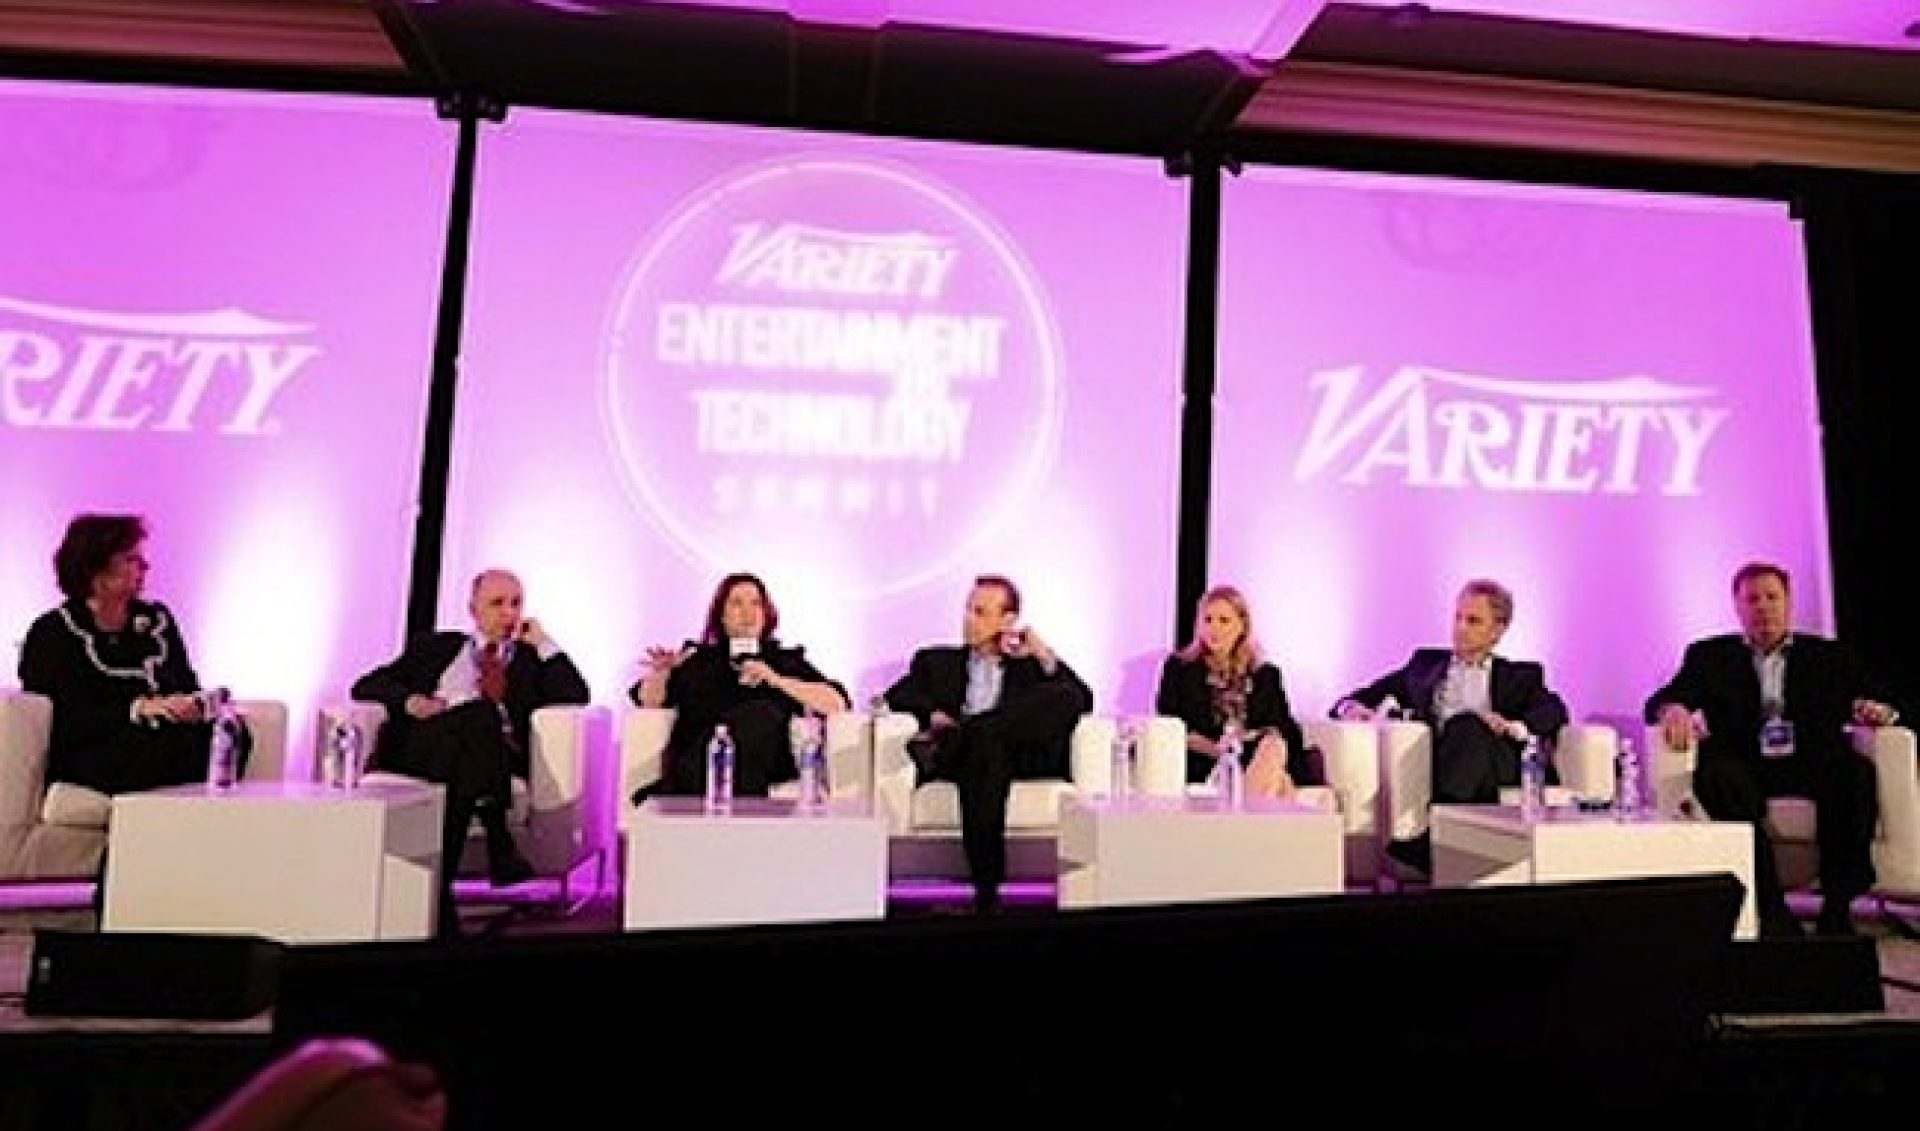 Univision President at Variety Summit: 'You Can't Be Relevant If You're Not Available'